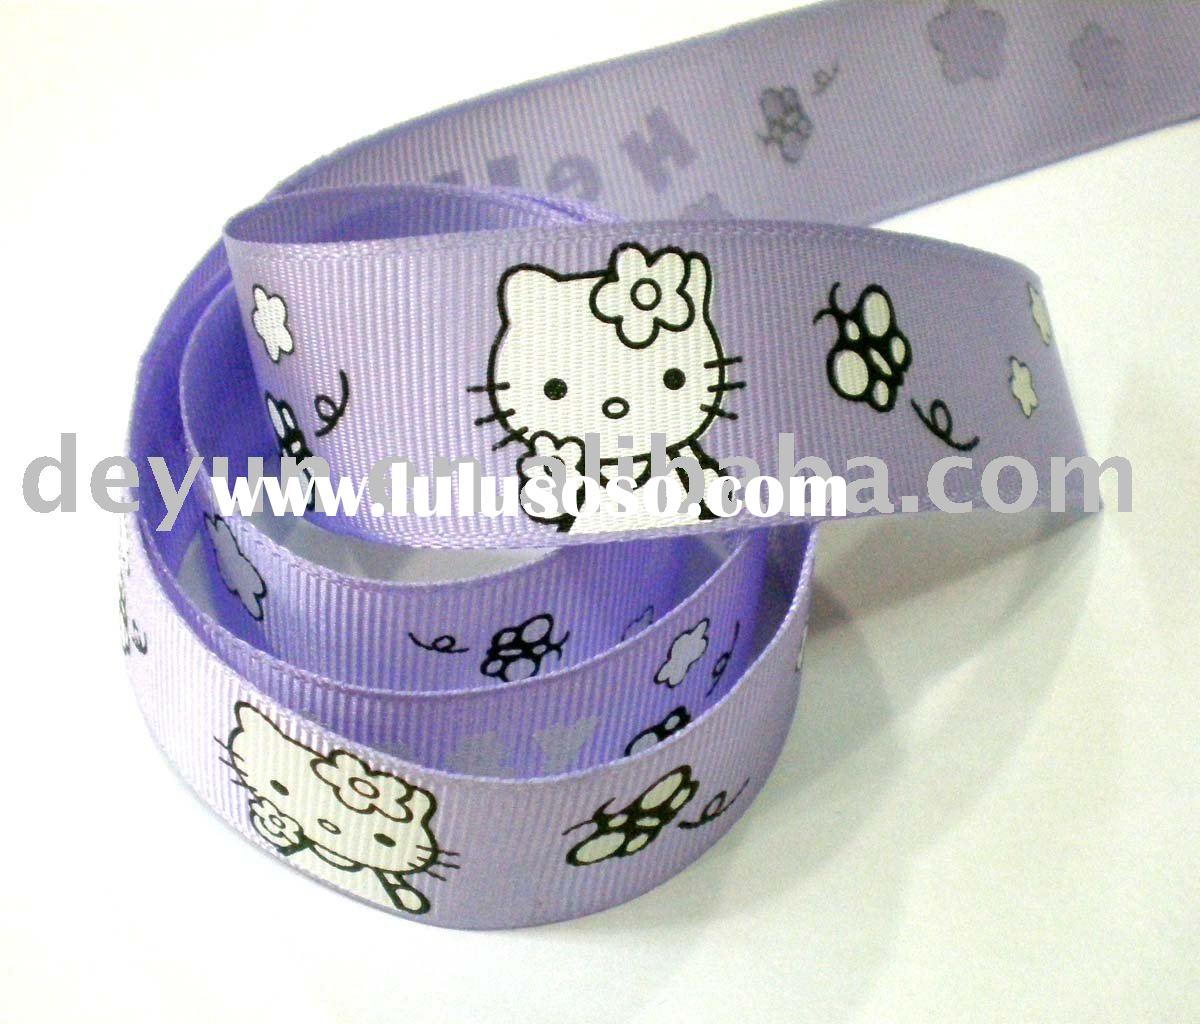 printed grosgrain cartoon ribbon ; hello kitty satin ribbon